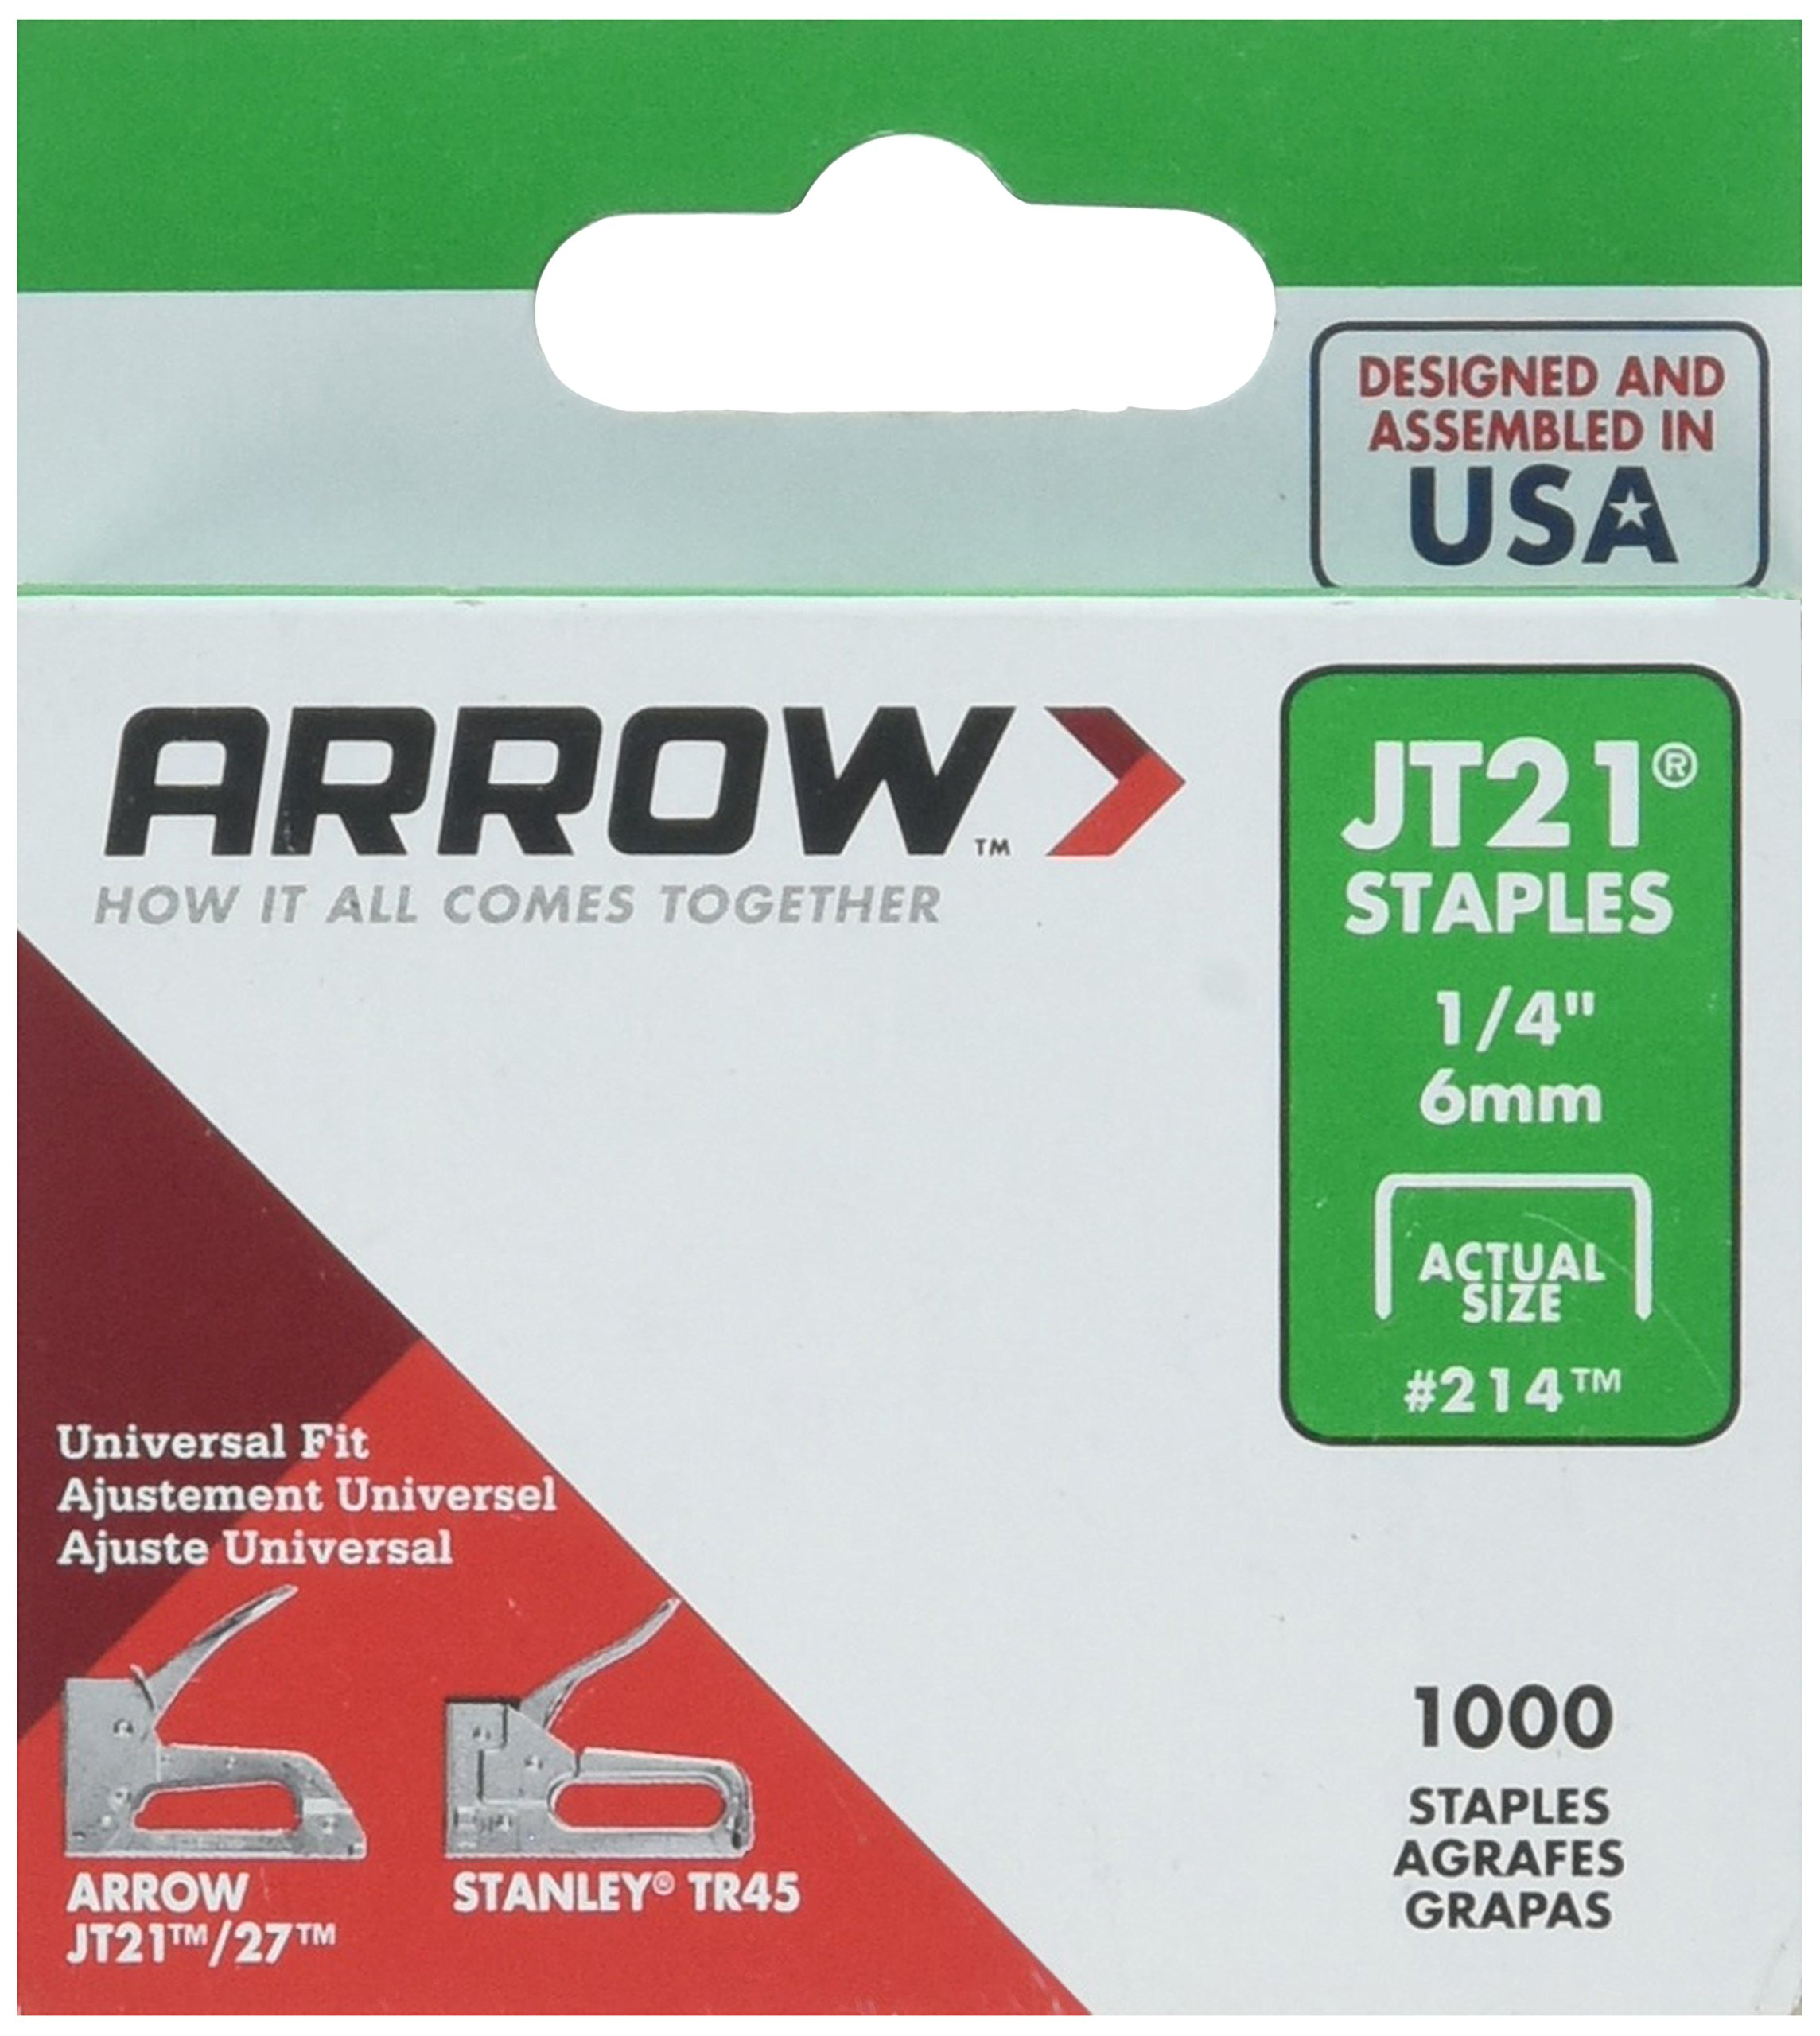 Arrow Fastener 214 5 Pack 1/4in. JT21 Light Duty Staple, 1,000 Staples per Pack